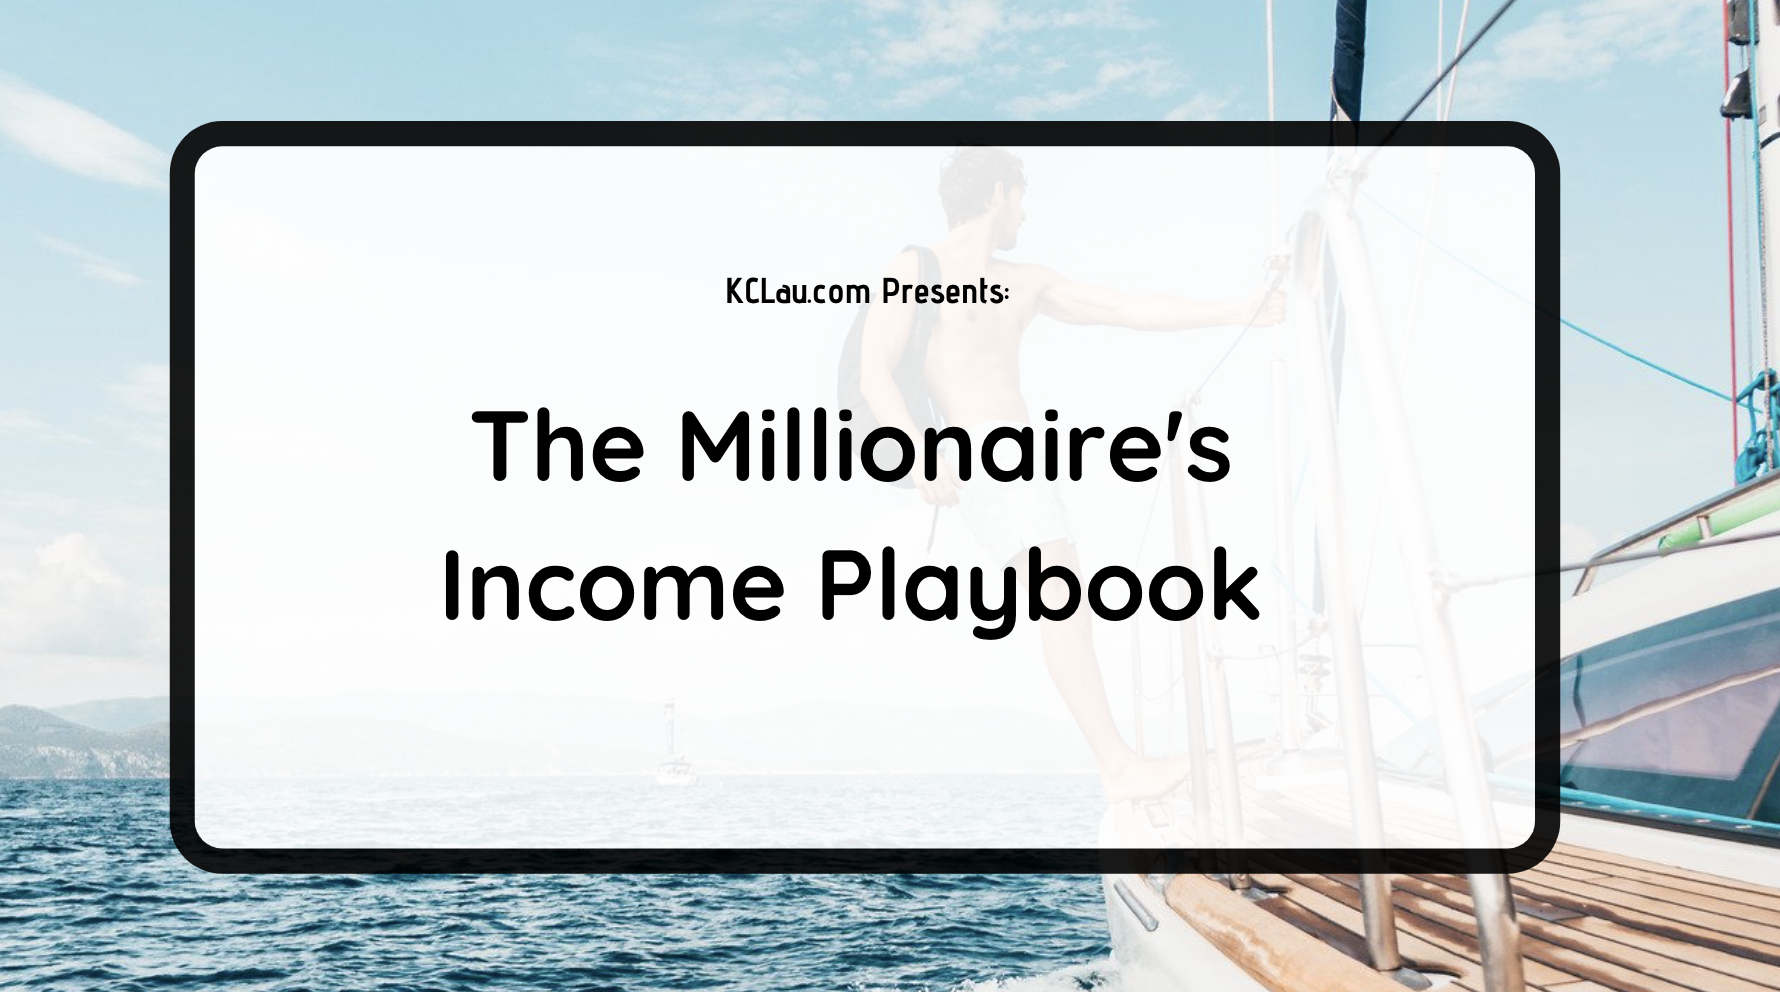 The Millionaire's Income Playbook